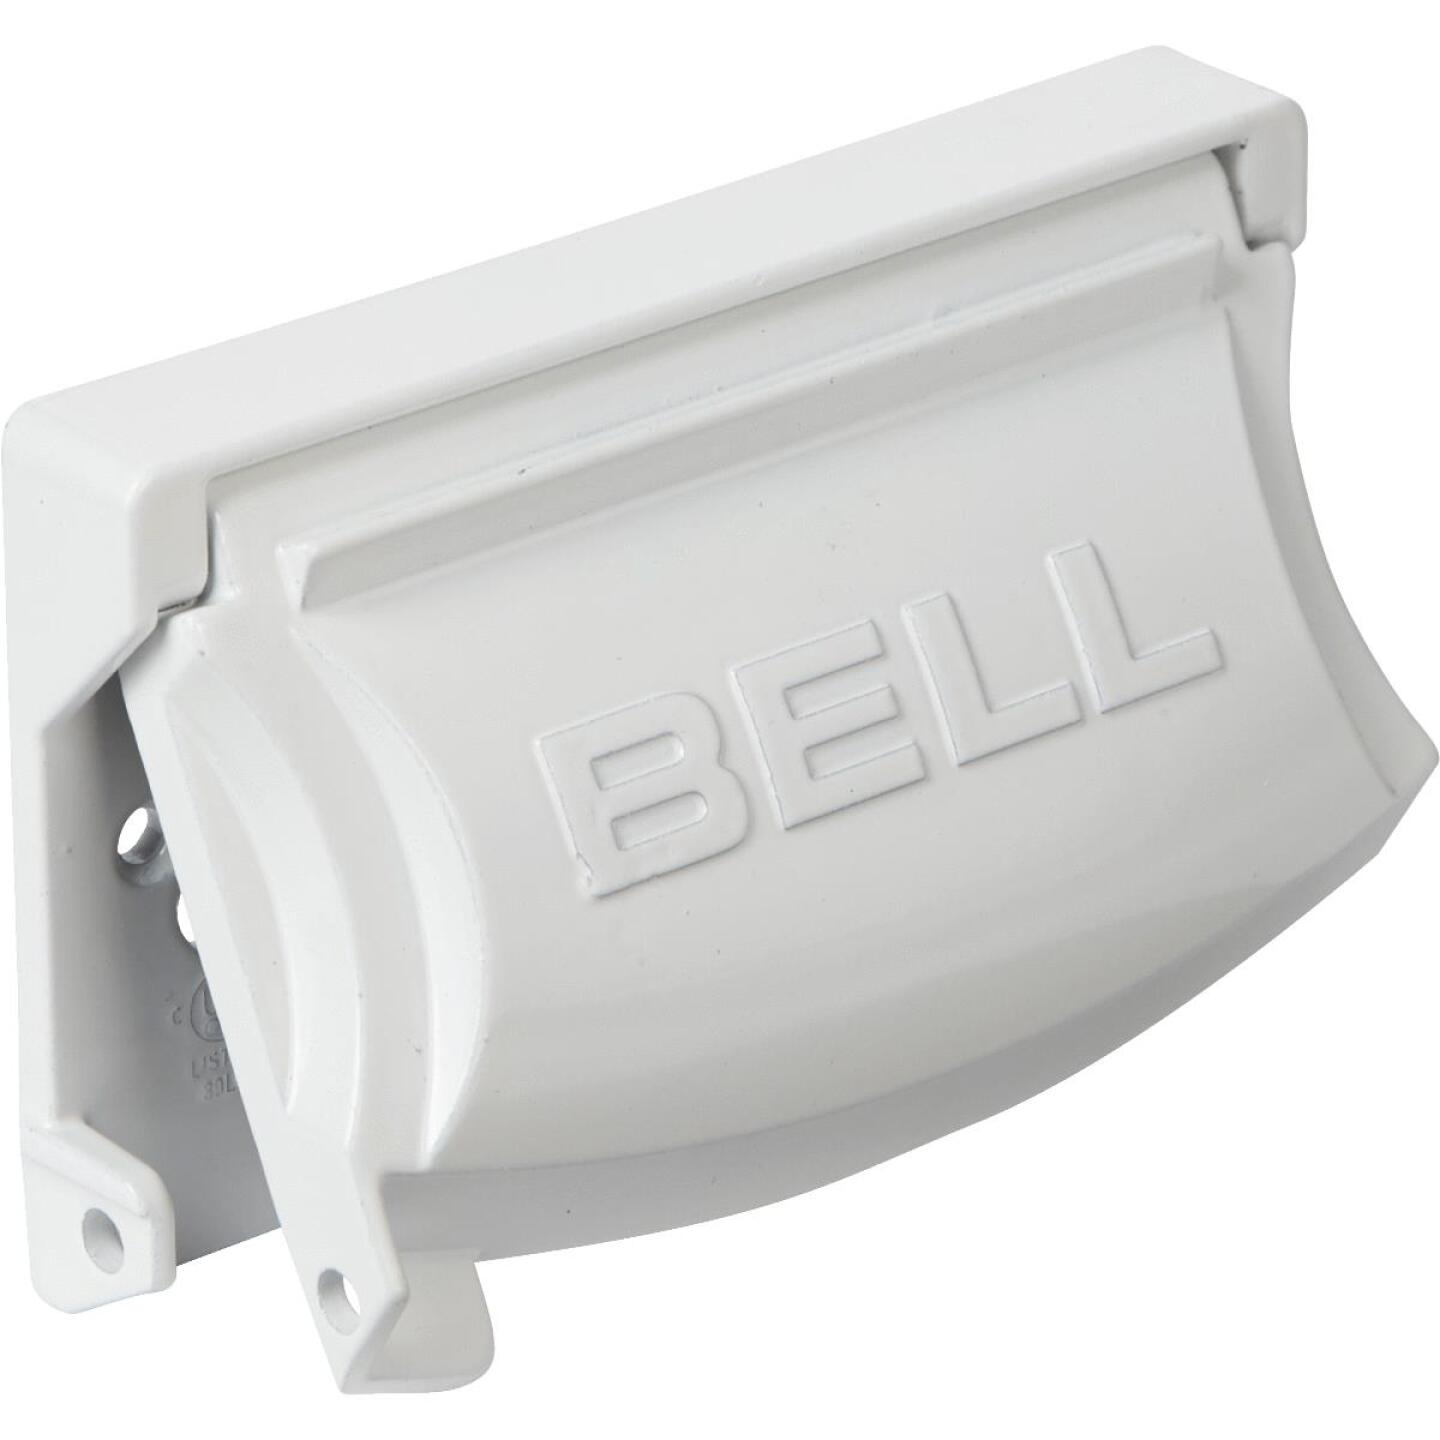 Bell Single Gang Multi-Configuration Die-Cast Metal White Outdoor Outlet Cover Image 1